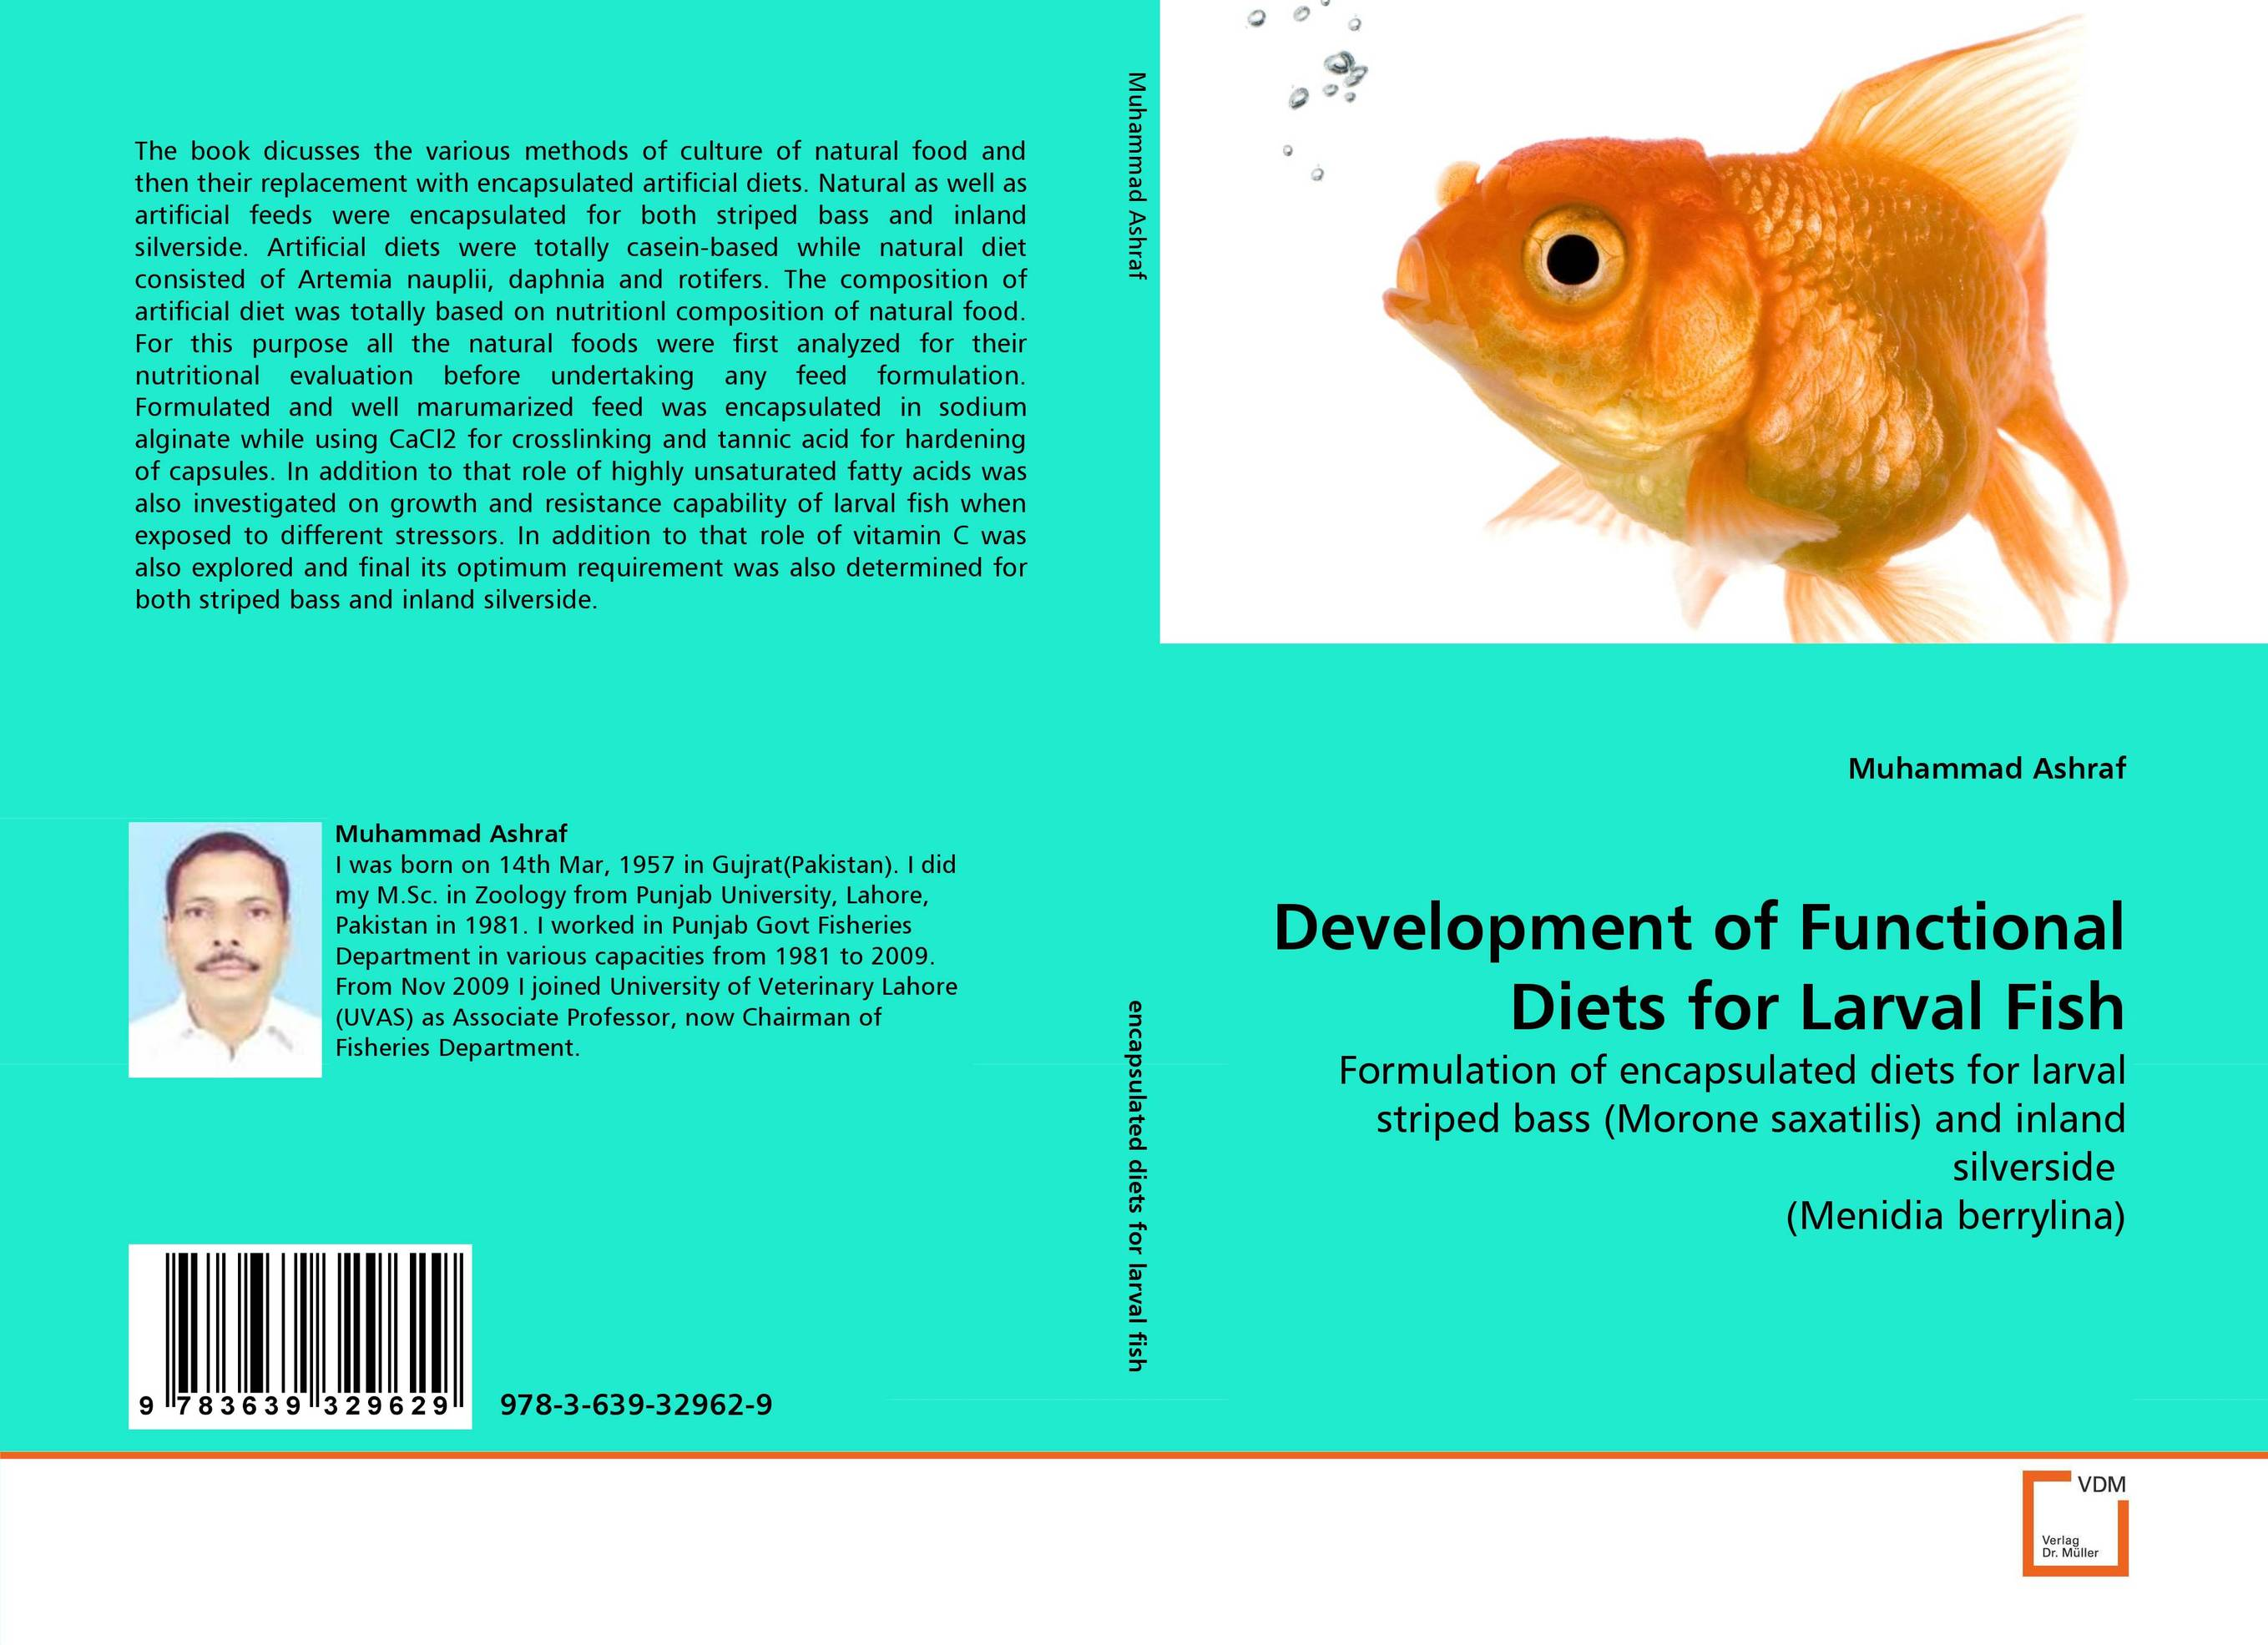 Development of Functional Diets for Larval Fish 1000g 98% fish collagen powder high purity for functional food